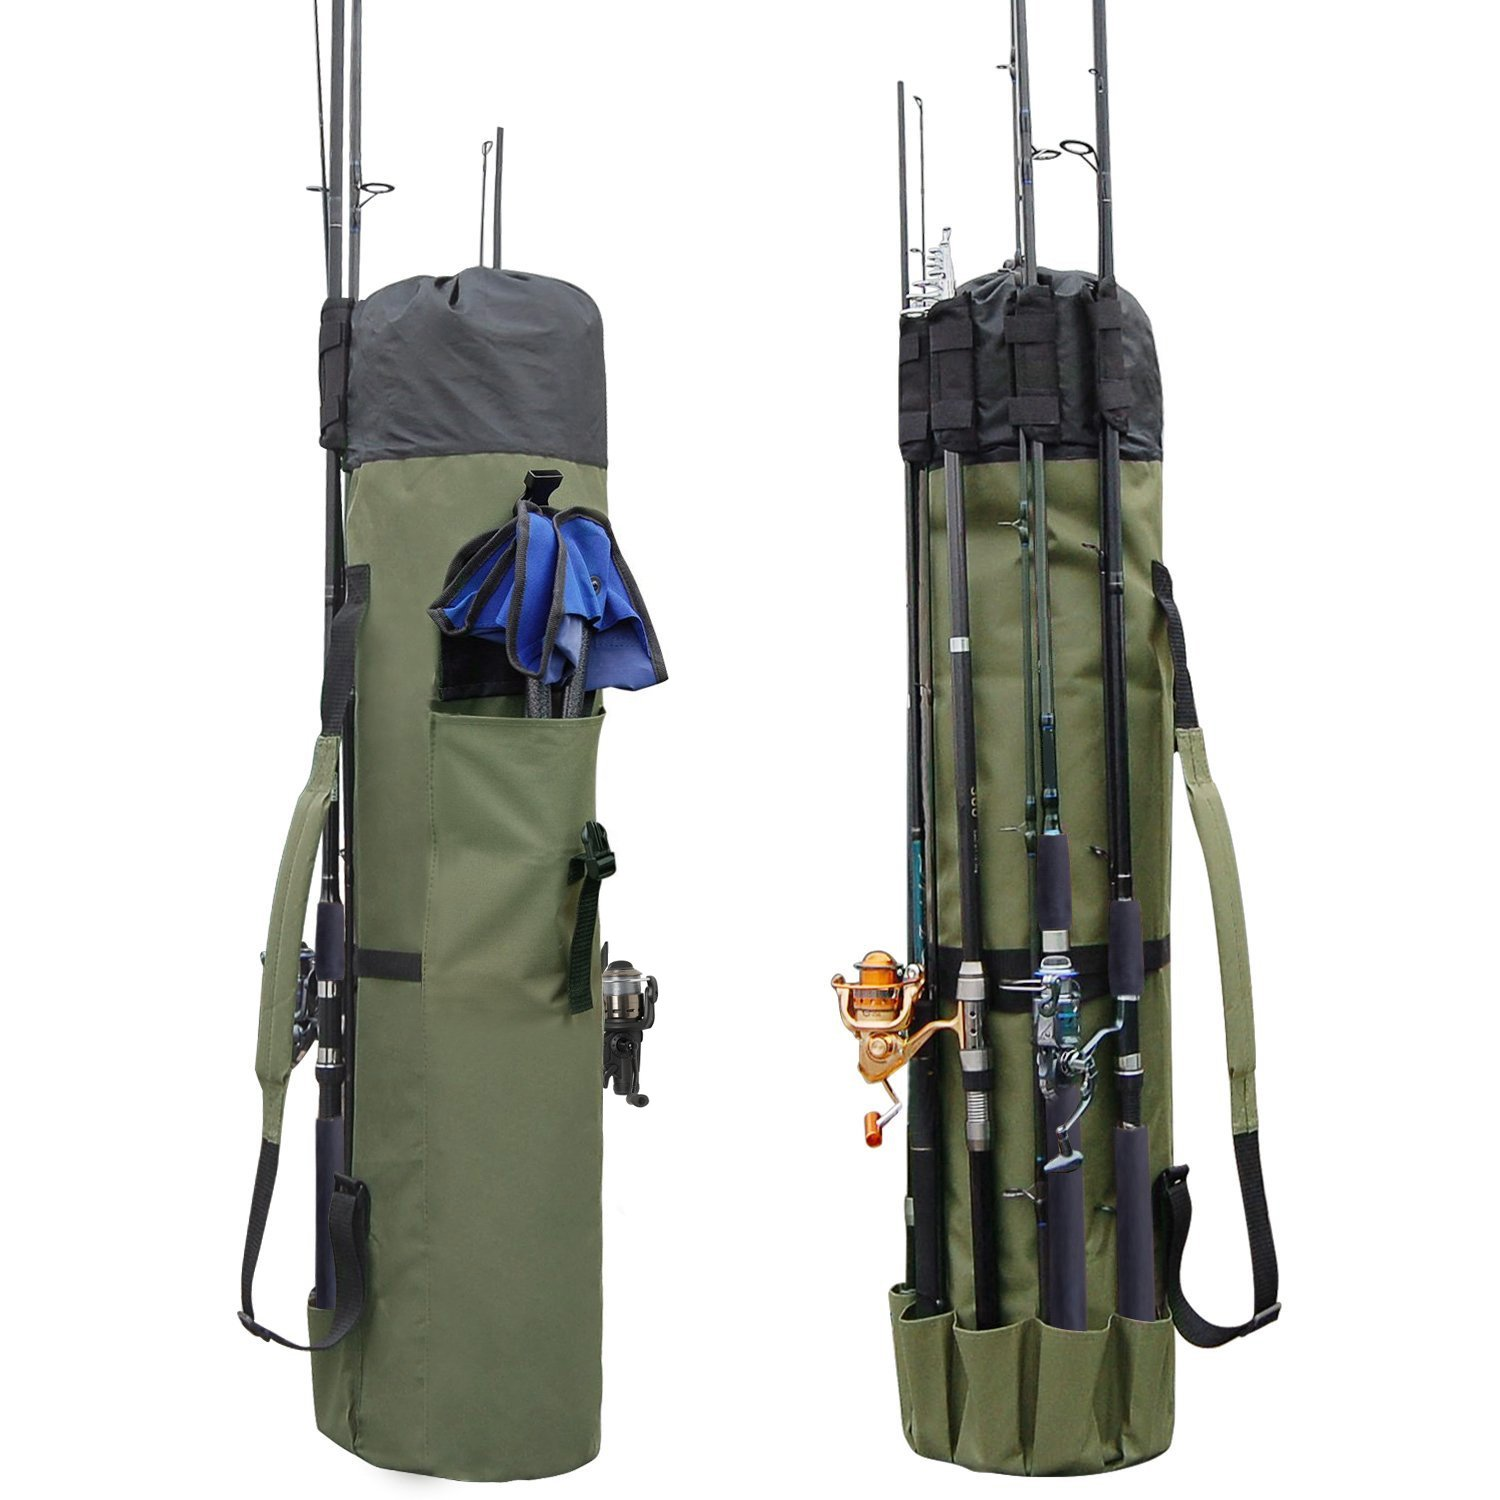 Allnice Durable Canvas Fishing Rod & Reel Organizer Bag Travel Carry Case Bag- Holds 5 Poles & Tackle